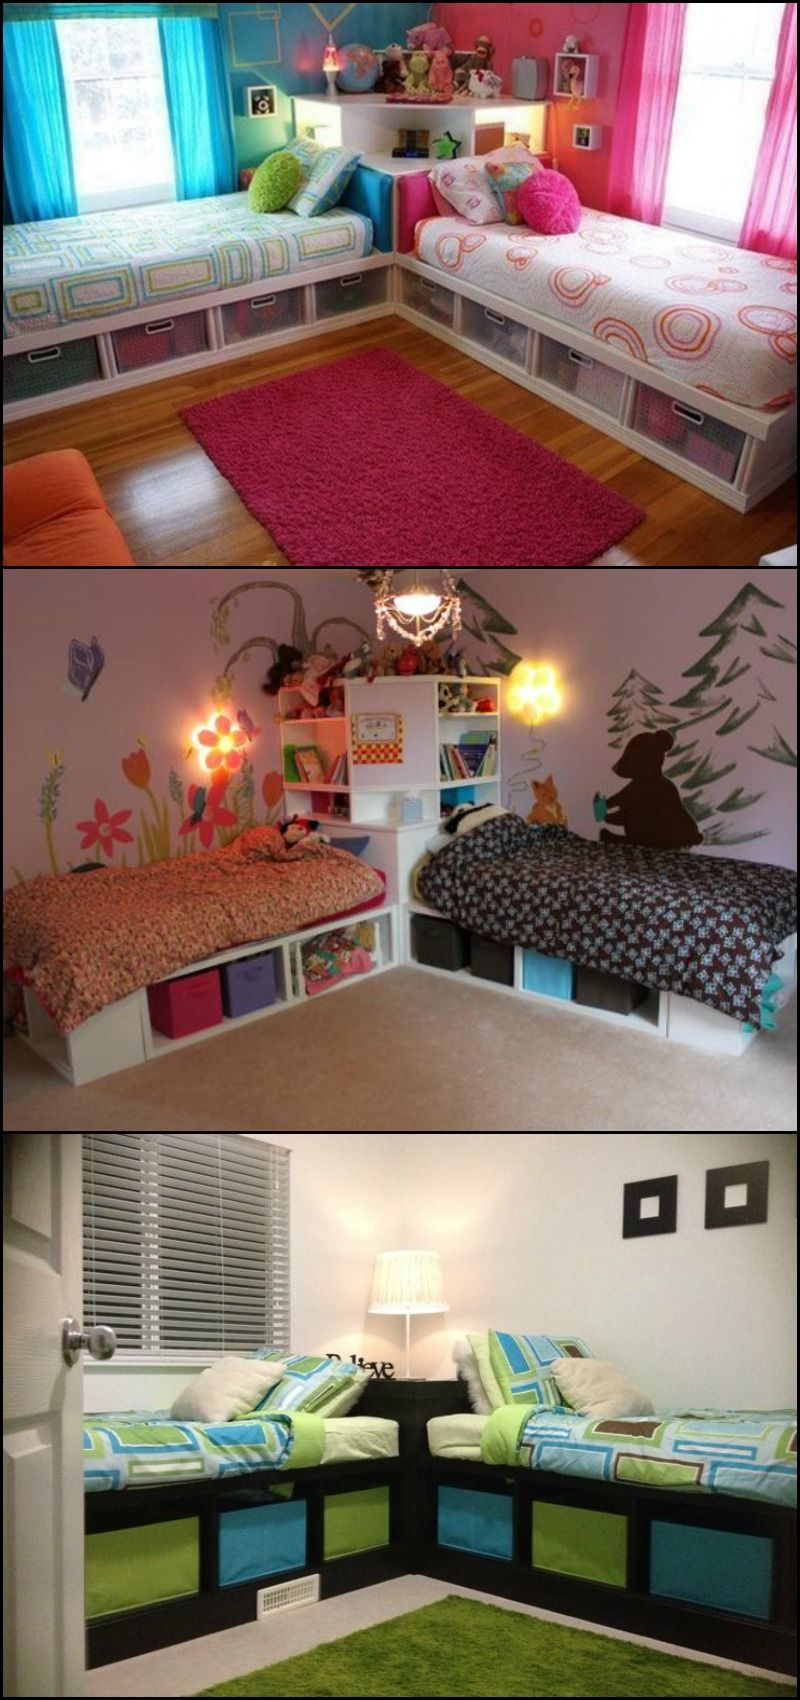 Need A Good Bed Design For Two Little Kids Sharing One Room